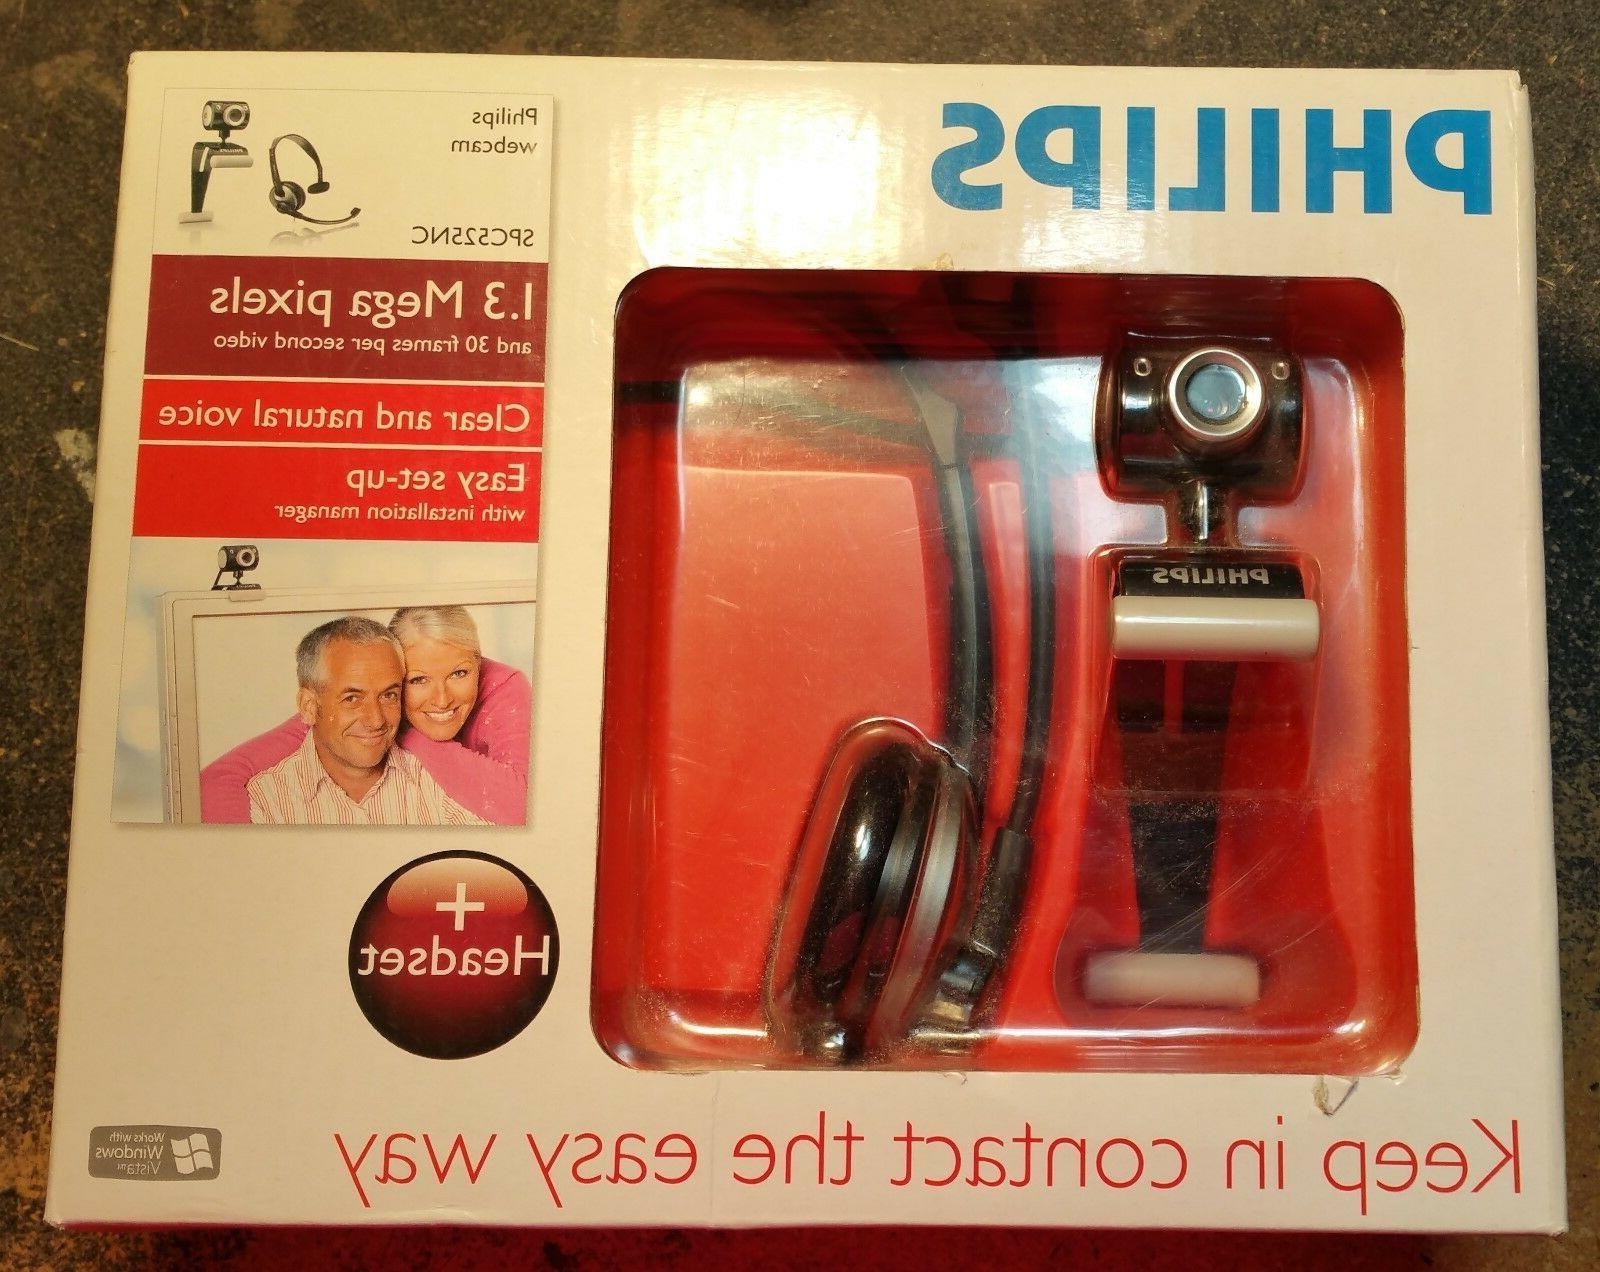 COMPUTER PHILLIPS DIGITAL CAMERA WITH MICROPHONE HEADSET  -